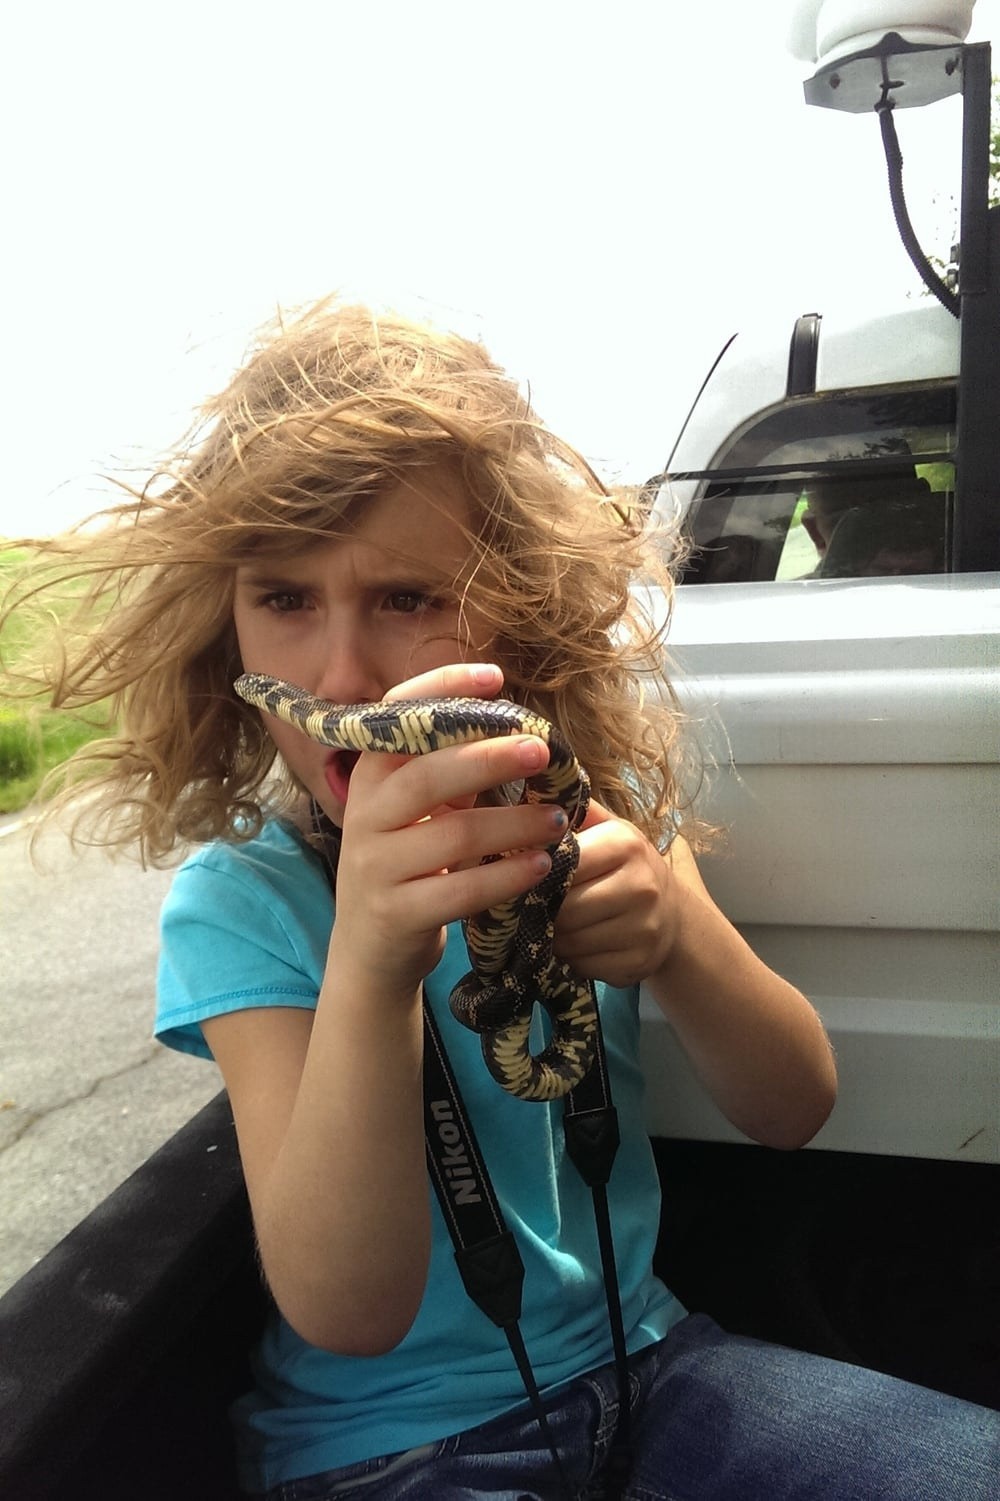 Eastern Kingsnake - Lily loved that snake and this crappy cell phone shot ended up being my favorite photo of 2015, hands down.  We were getting a ride from a ranger in the back of his pick-up to release a different snake where it was found.  This snake went on a little ride but was also returned to where it was found.